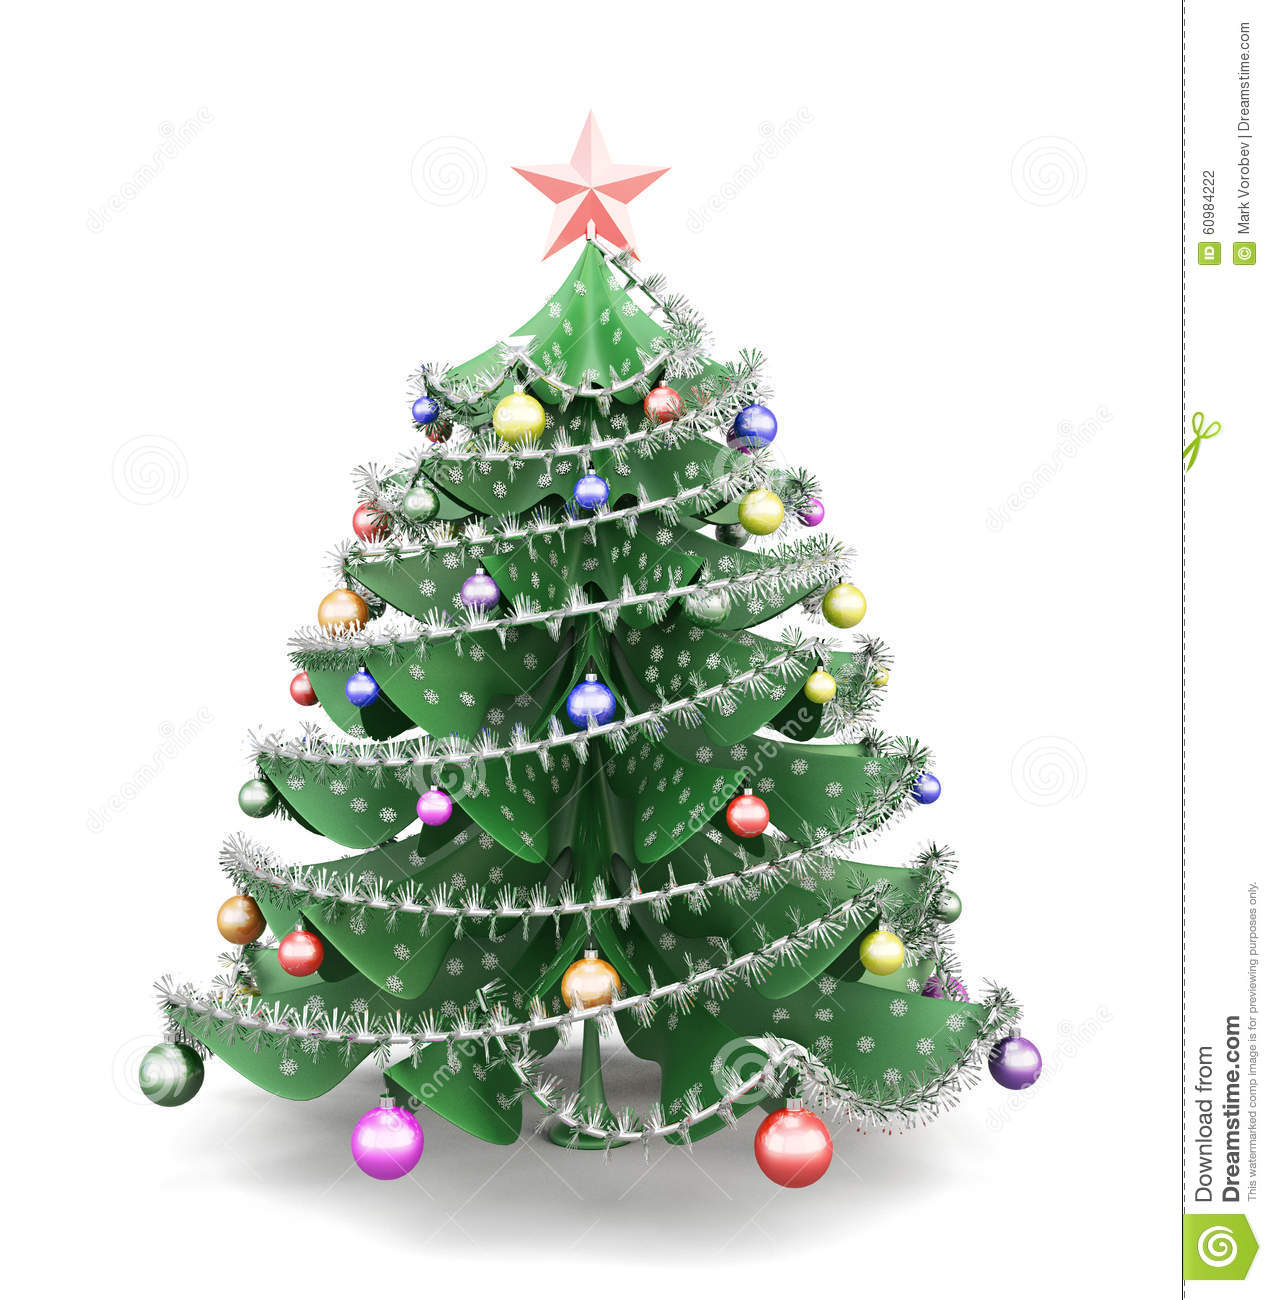 Decorate Christmas Tree On Paper: Decorated Paper Christmas Tree. 3d. Stock Illustration